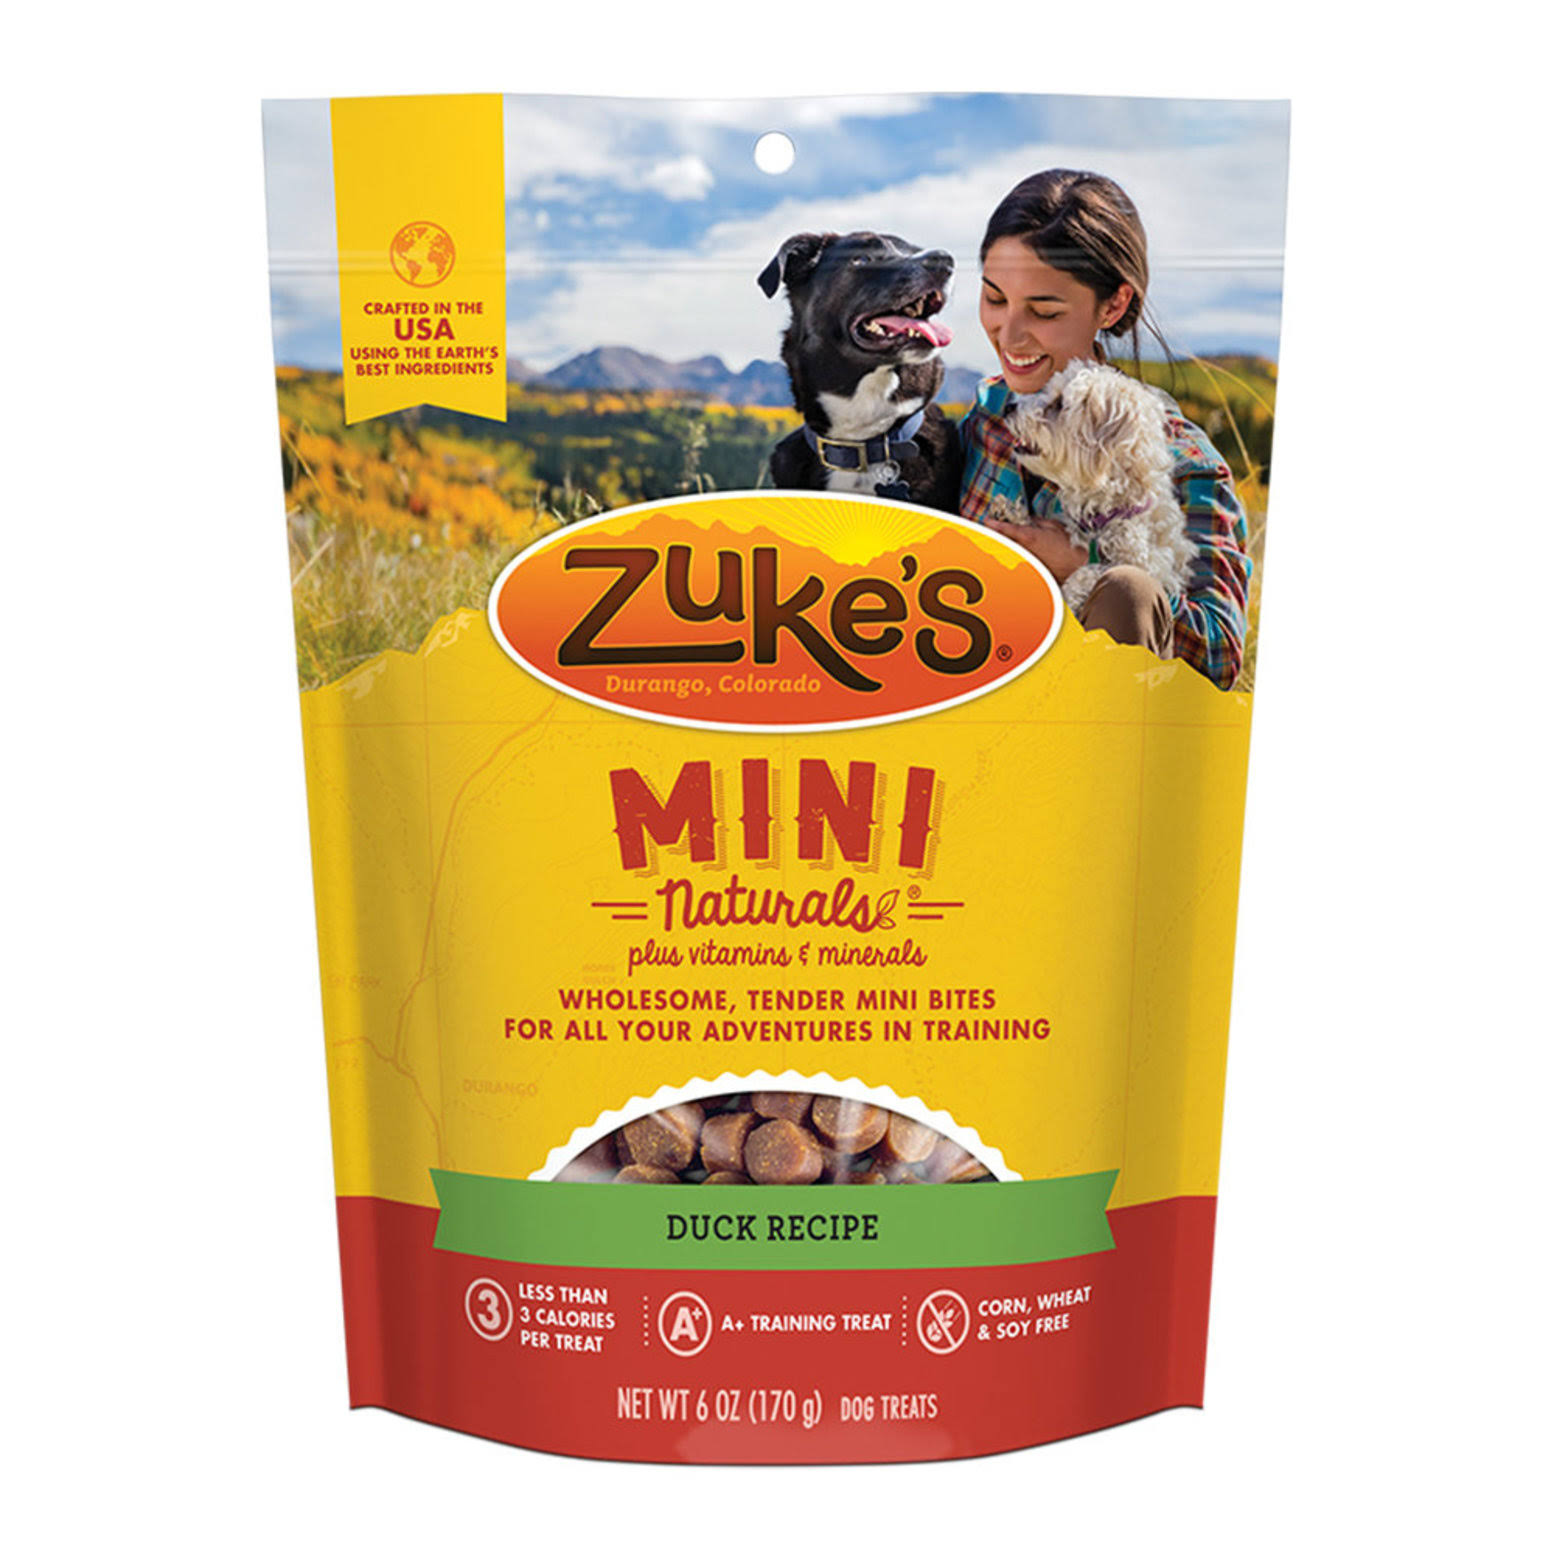 Zukes Mini Naturals Dog Treats - Delicious Duck Recipe, 170g